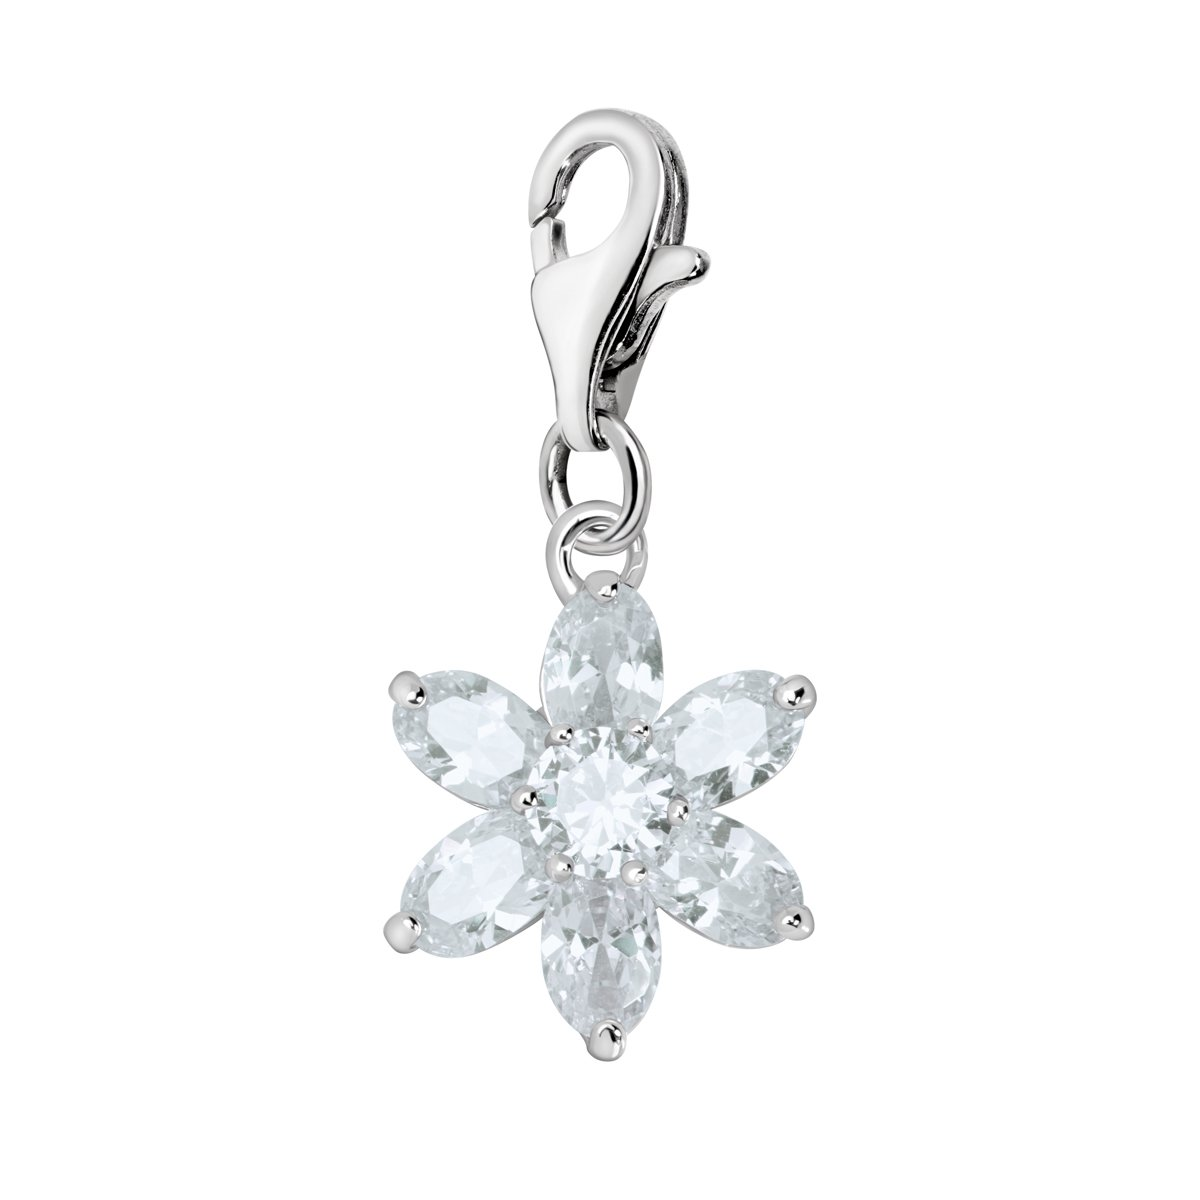 Quiges 925 Sterling Silver Crystal White Pear Cubic Zirconia Flower Lobster Clasp Charm Clip on Pendant